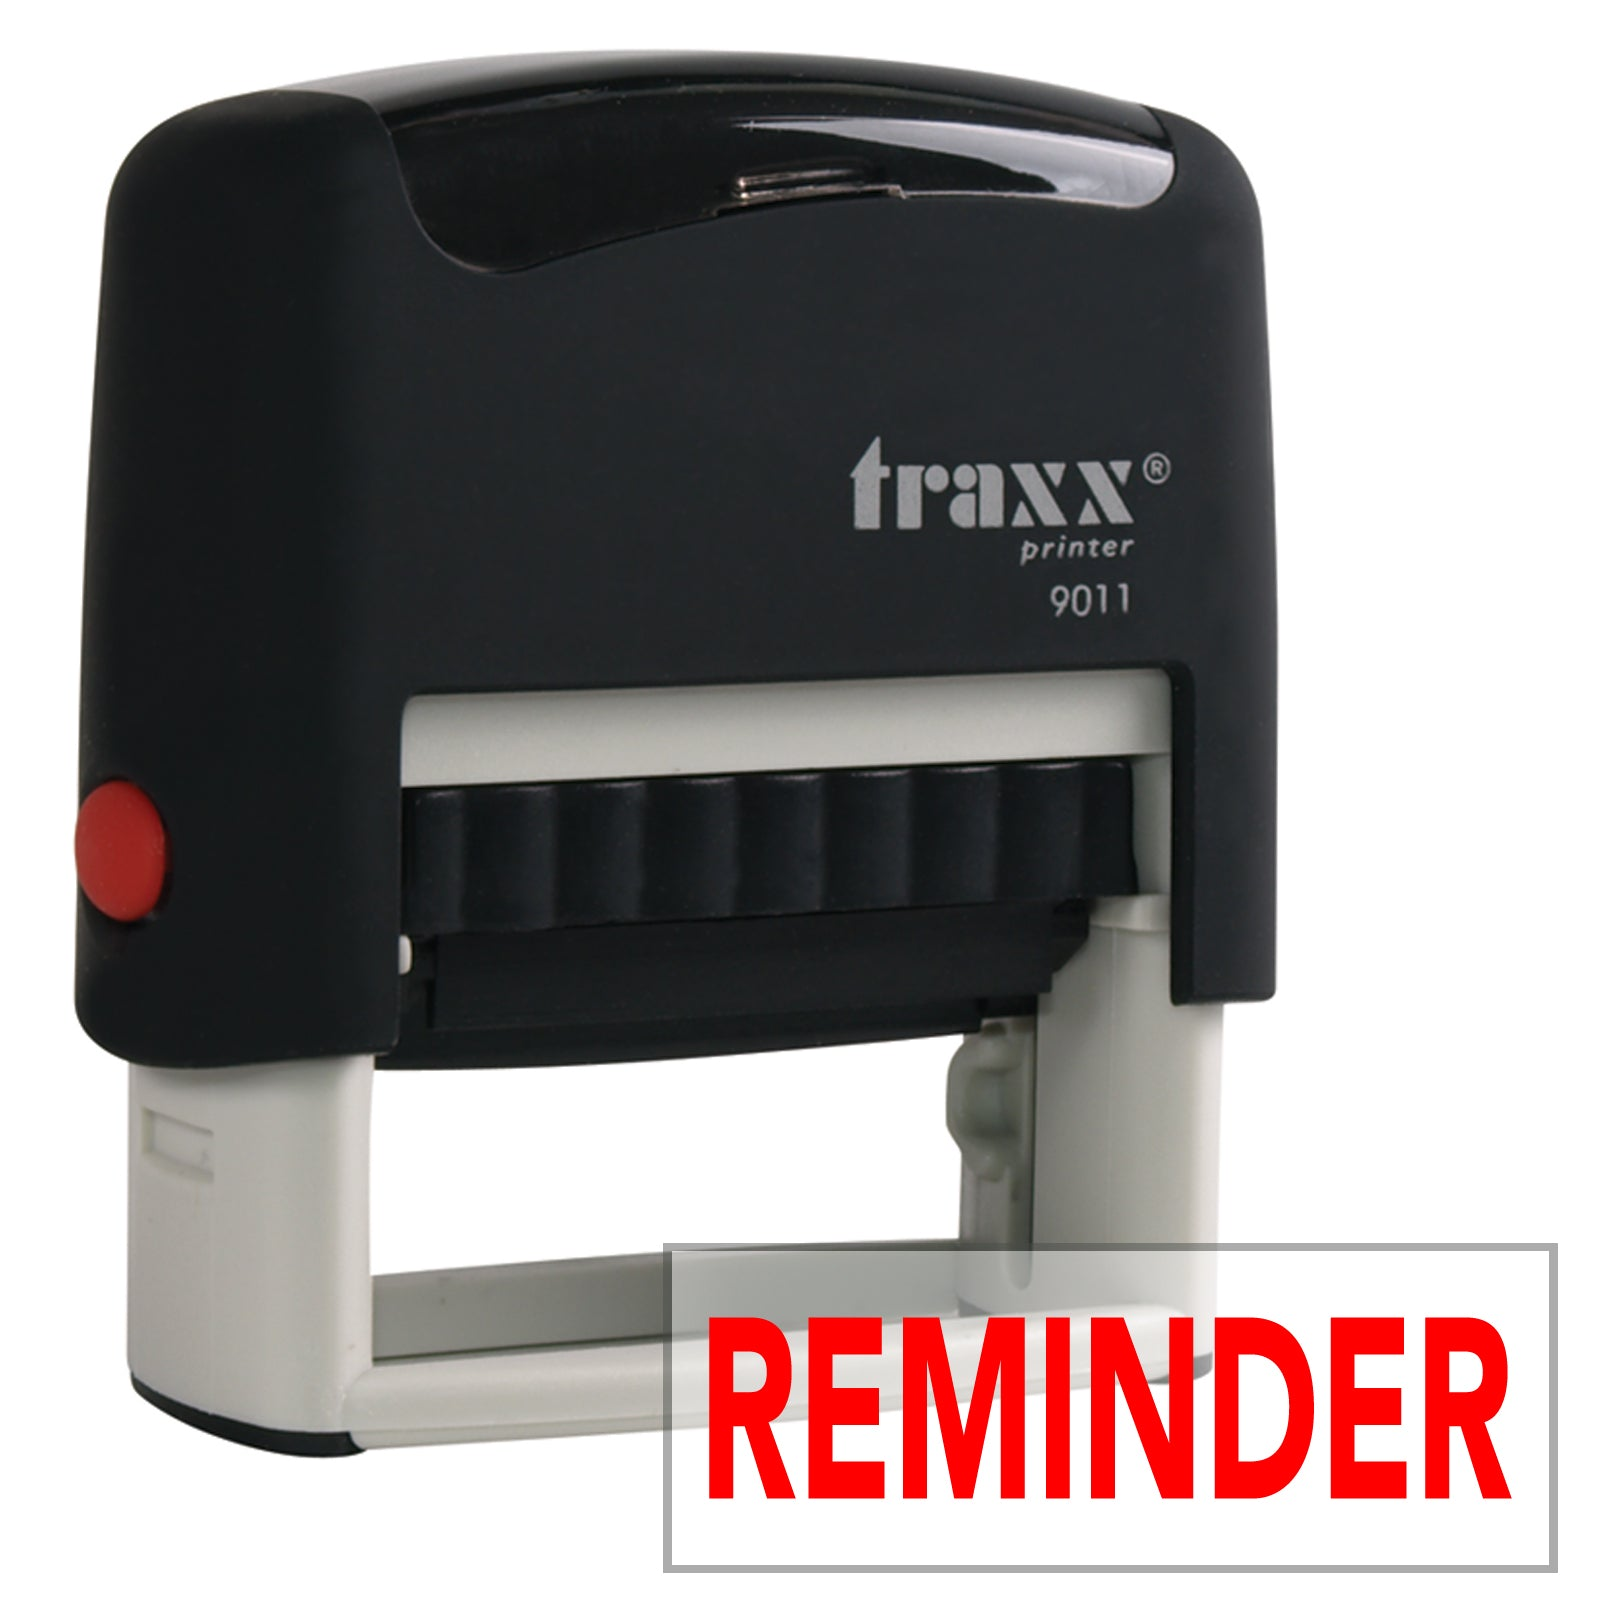 Traxx 9011 38 x 14mm Word Stamp - REMINDER